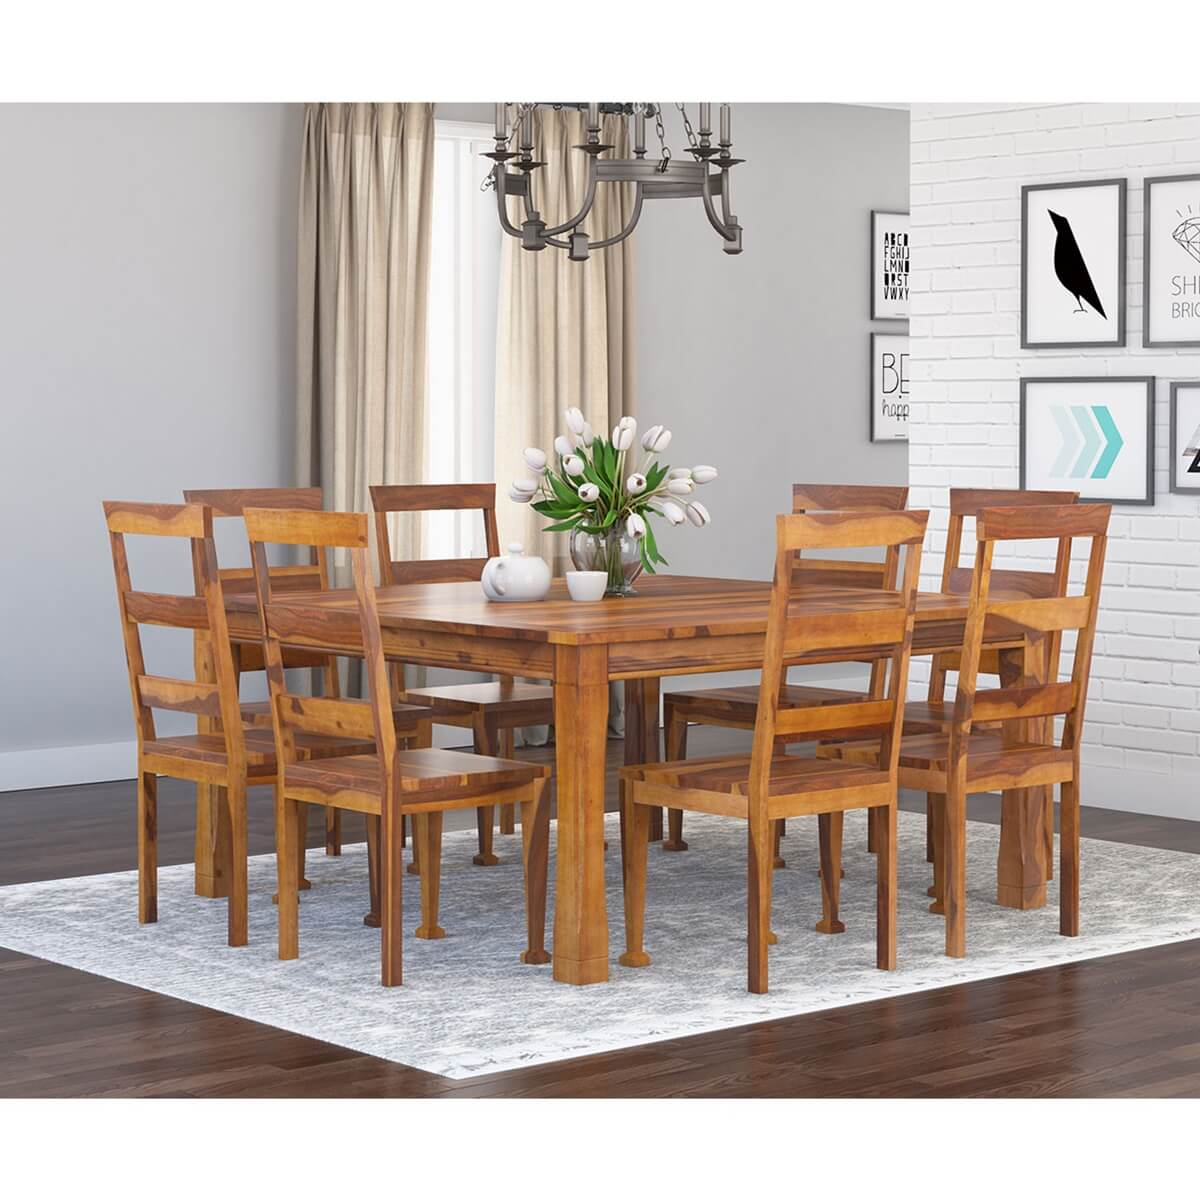 Square Dining Table With Bench: Appalachian Wood Rustic Square 9Pc Dining Table And Chair